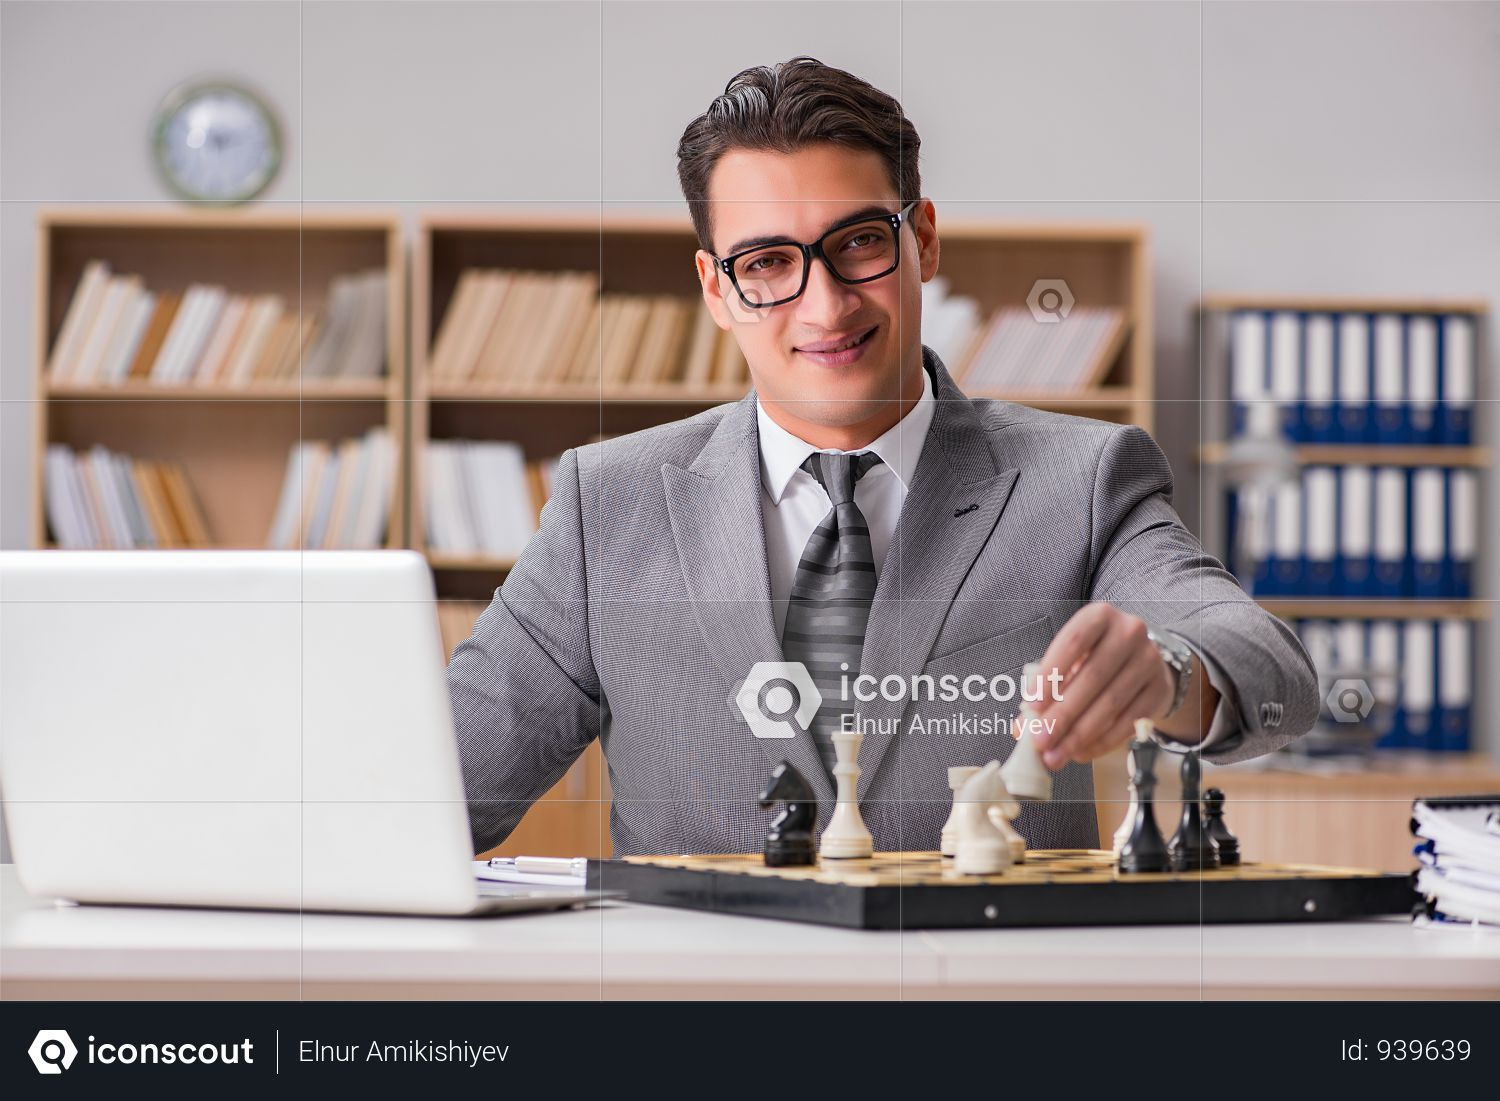 Premium Young Businessman Thinking About Business Strategy Photo Download In Png Jpg Format Business Strategy Business Man Business Photos